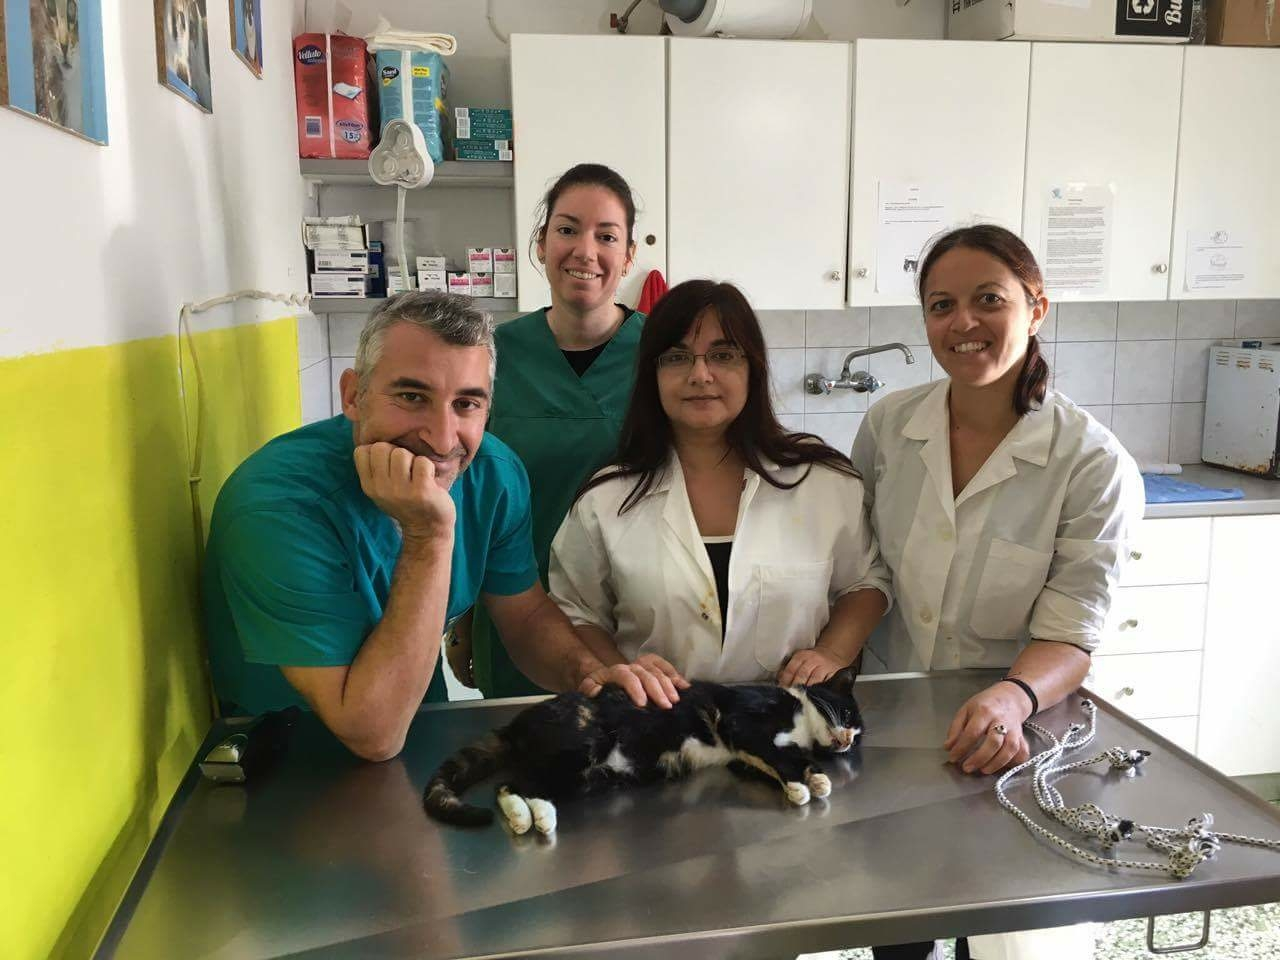 Dr. Manolis Vorisis, Dr. Andrianna Papadimitropoulou, our volunteer, Hariklia Psaki, who helped in the surgeries and in the preparation for the neutering and Litsa Passari, our coordinator